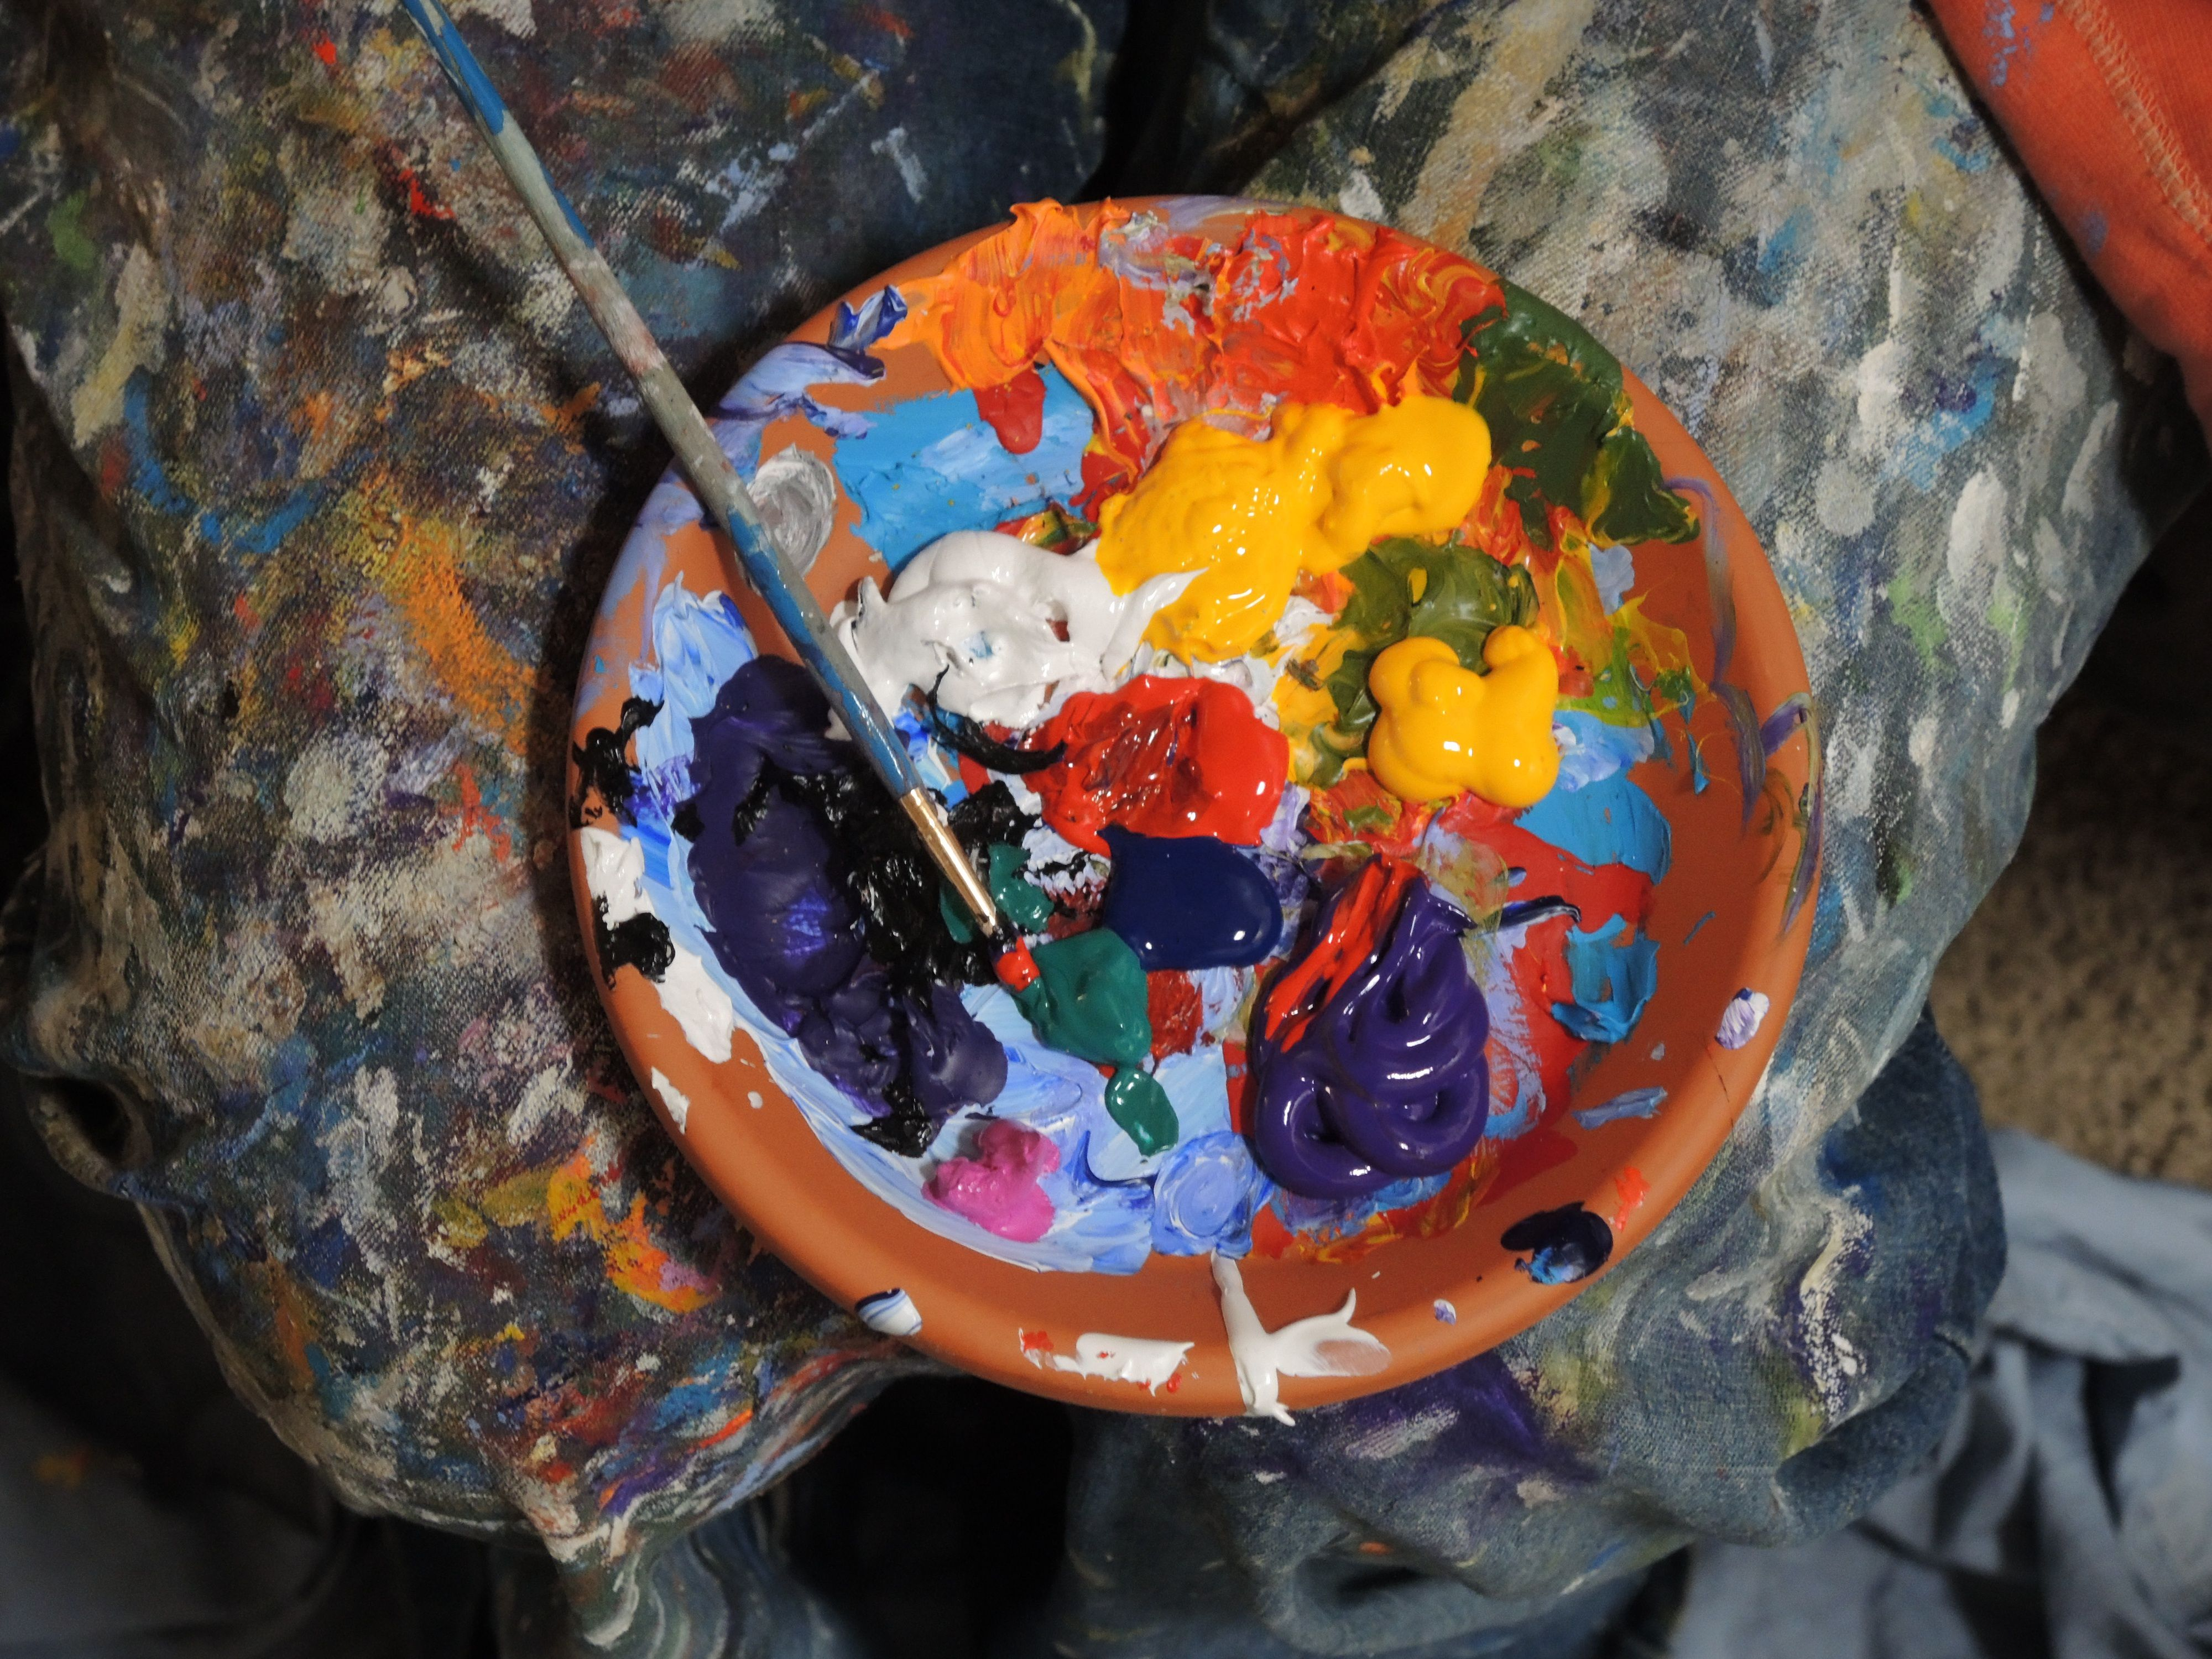 Glaze Art - Painting Glazes in Oils or Acrylics